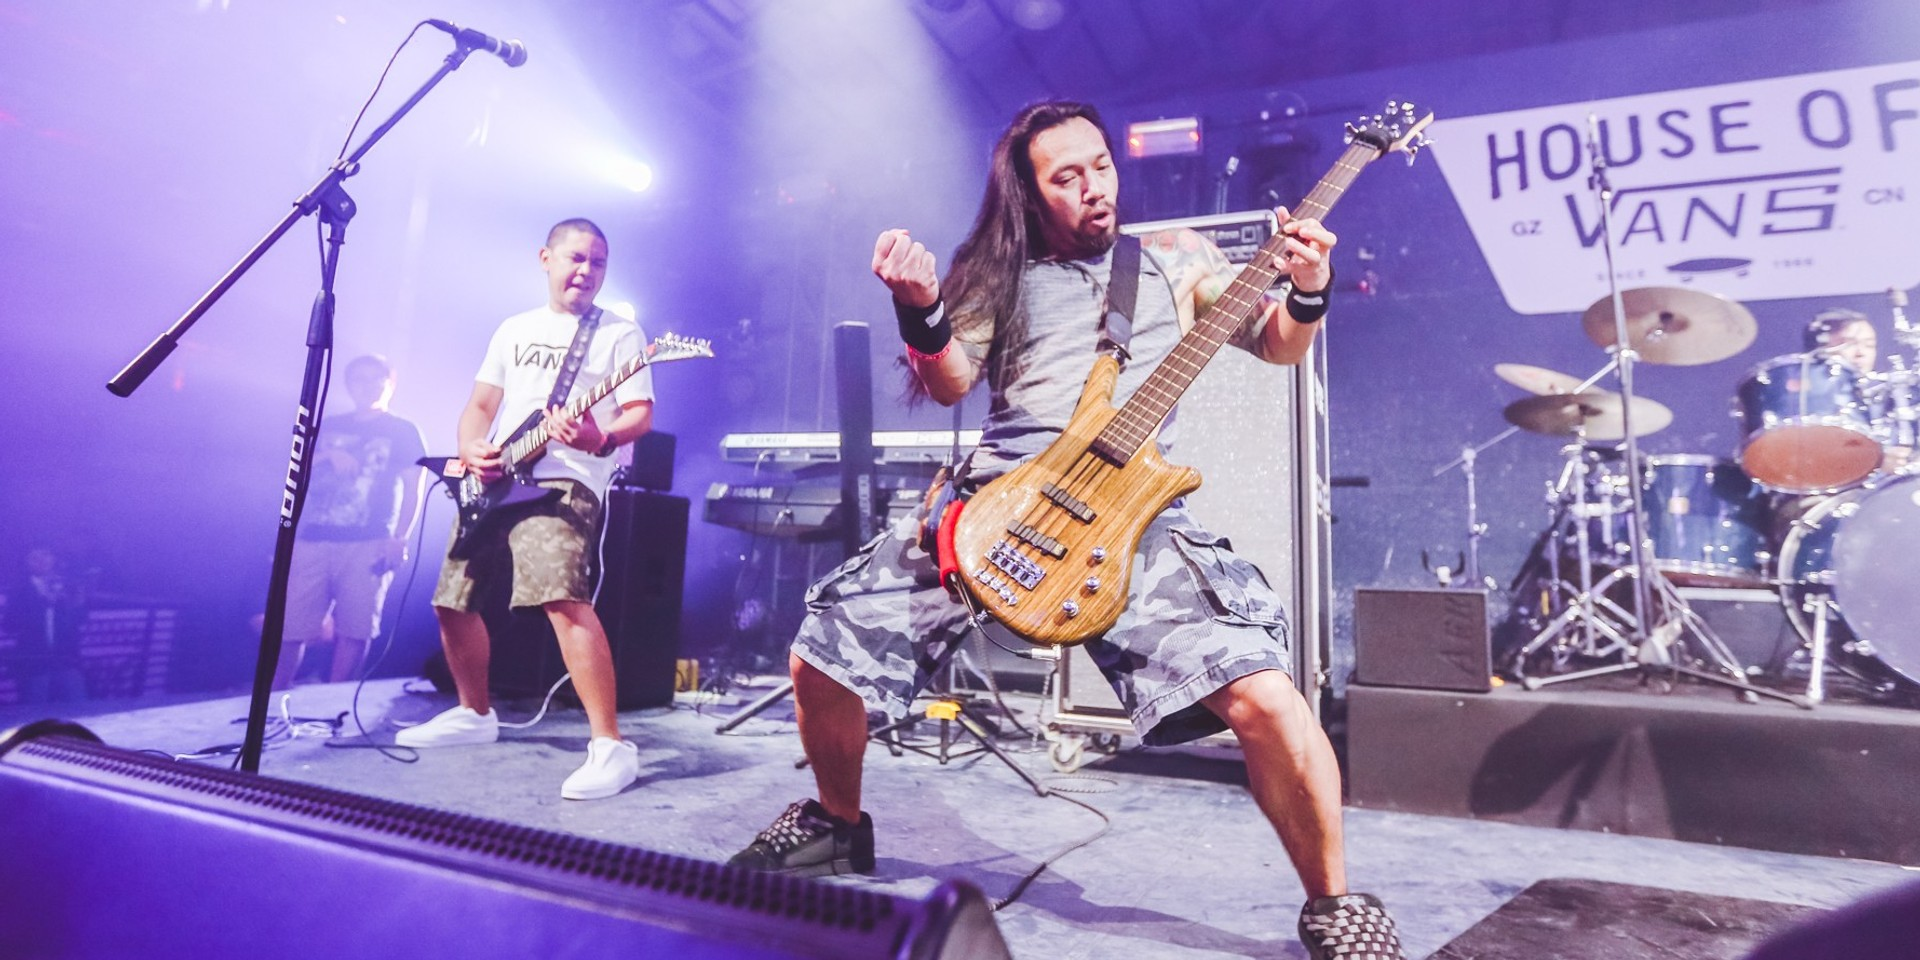 Vans Musicians Wanted returns to Singapore, open for submissions now